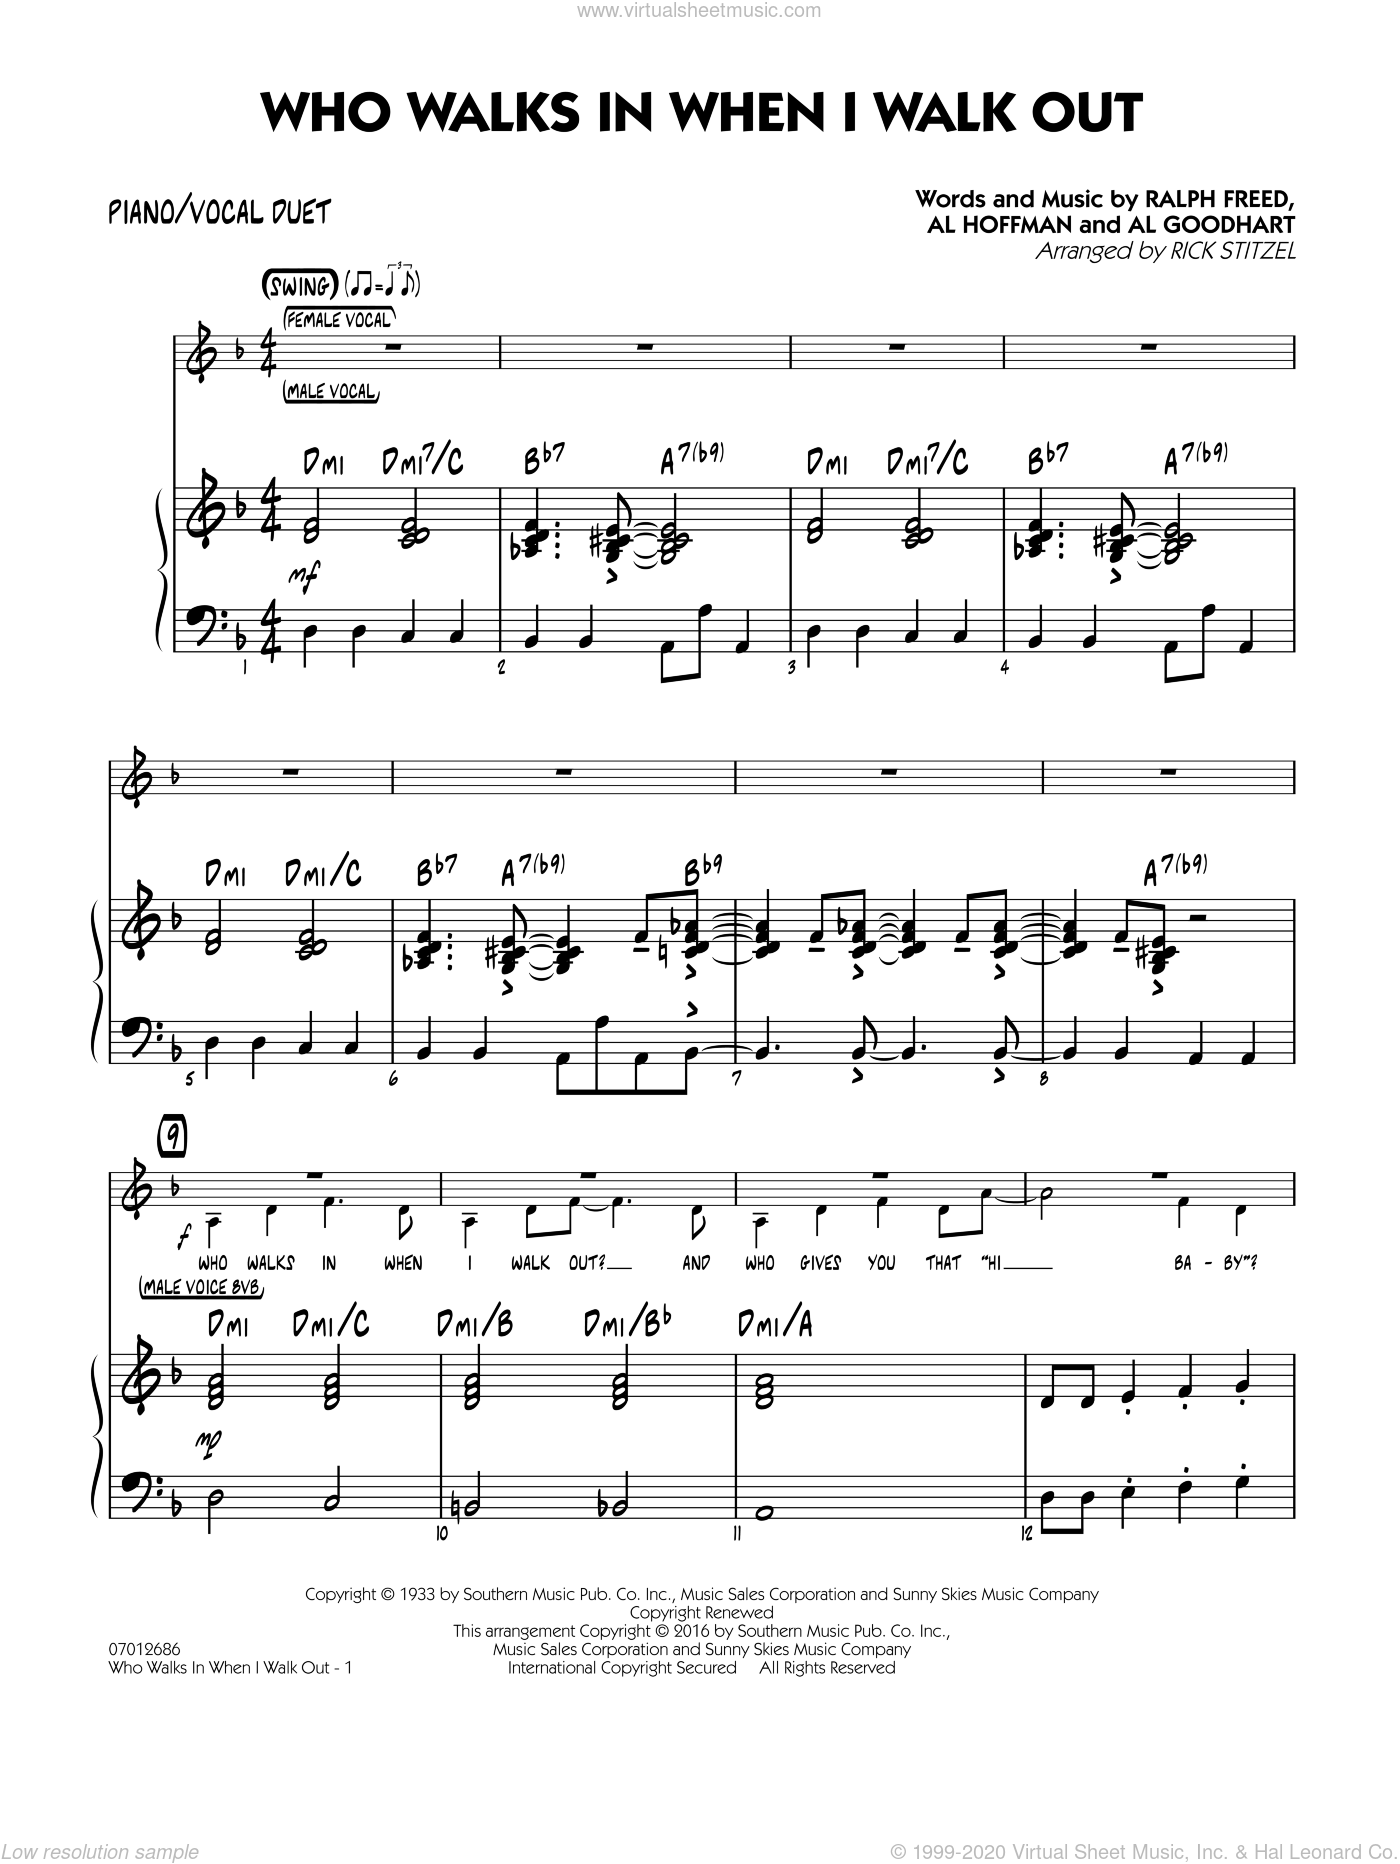 Who Walks In When I Walk Out? (Key: D minor) sheet music for jazz band (piano/vocal duet) by Rick Stitzel, Ella Fitzgerald, Louis Armstrong, Al Goodhart, Al Hoffman and Ralph Freed. Score Image Preview.